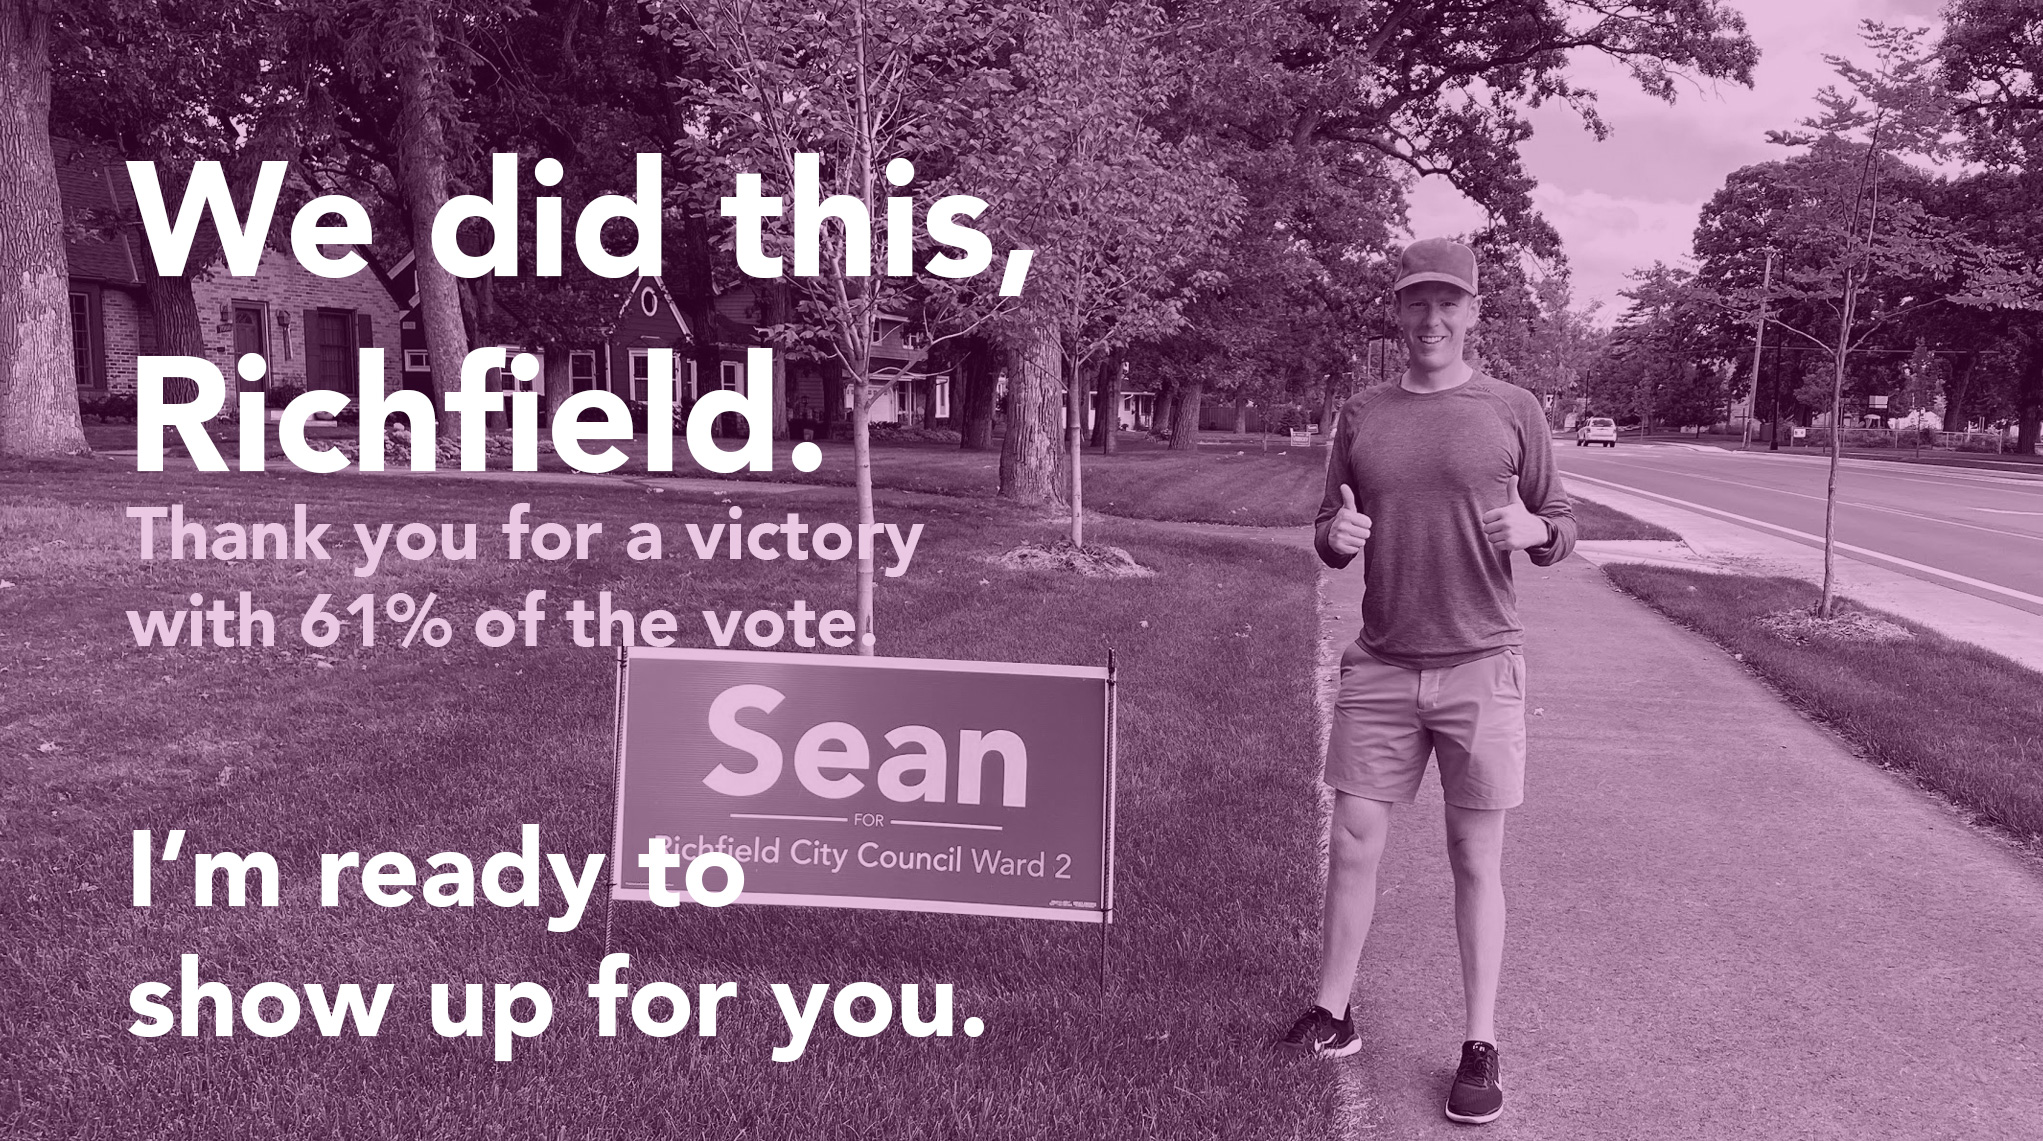 """A photo of Sean with the text, """"We did this Richfield. Thank you for a victory with 61% of the vote. I'm ready to show up for you."""""""